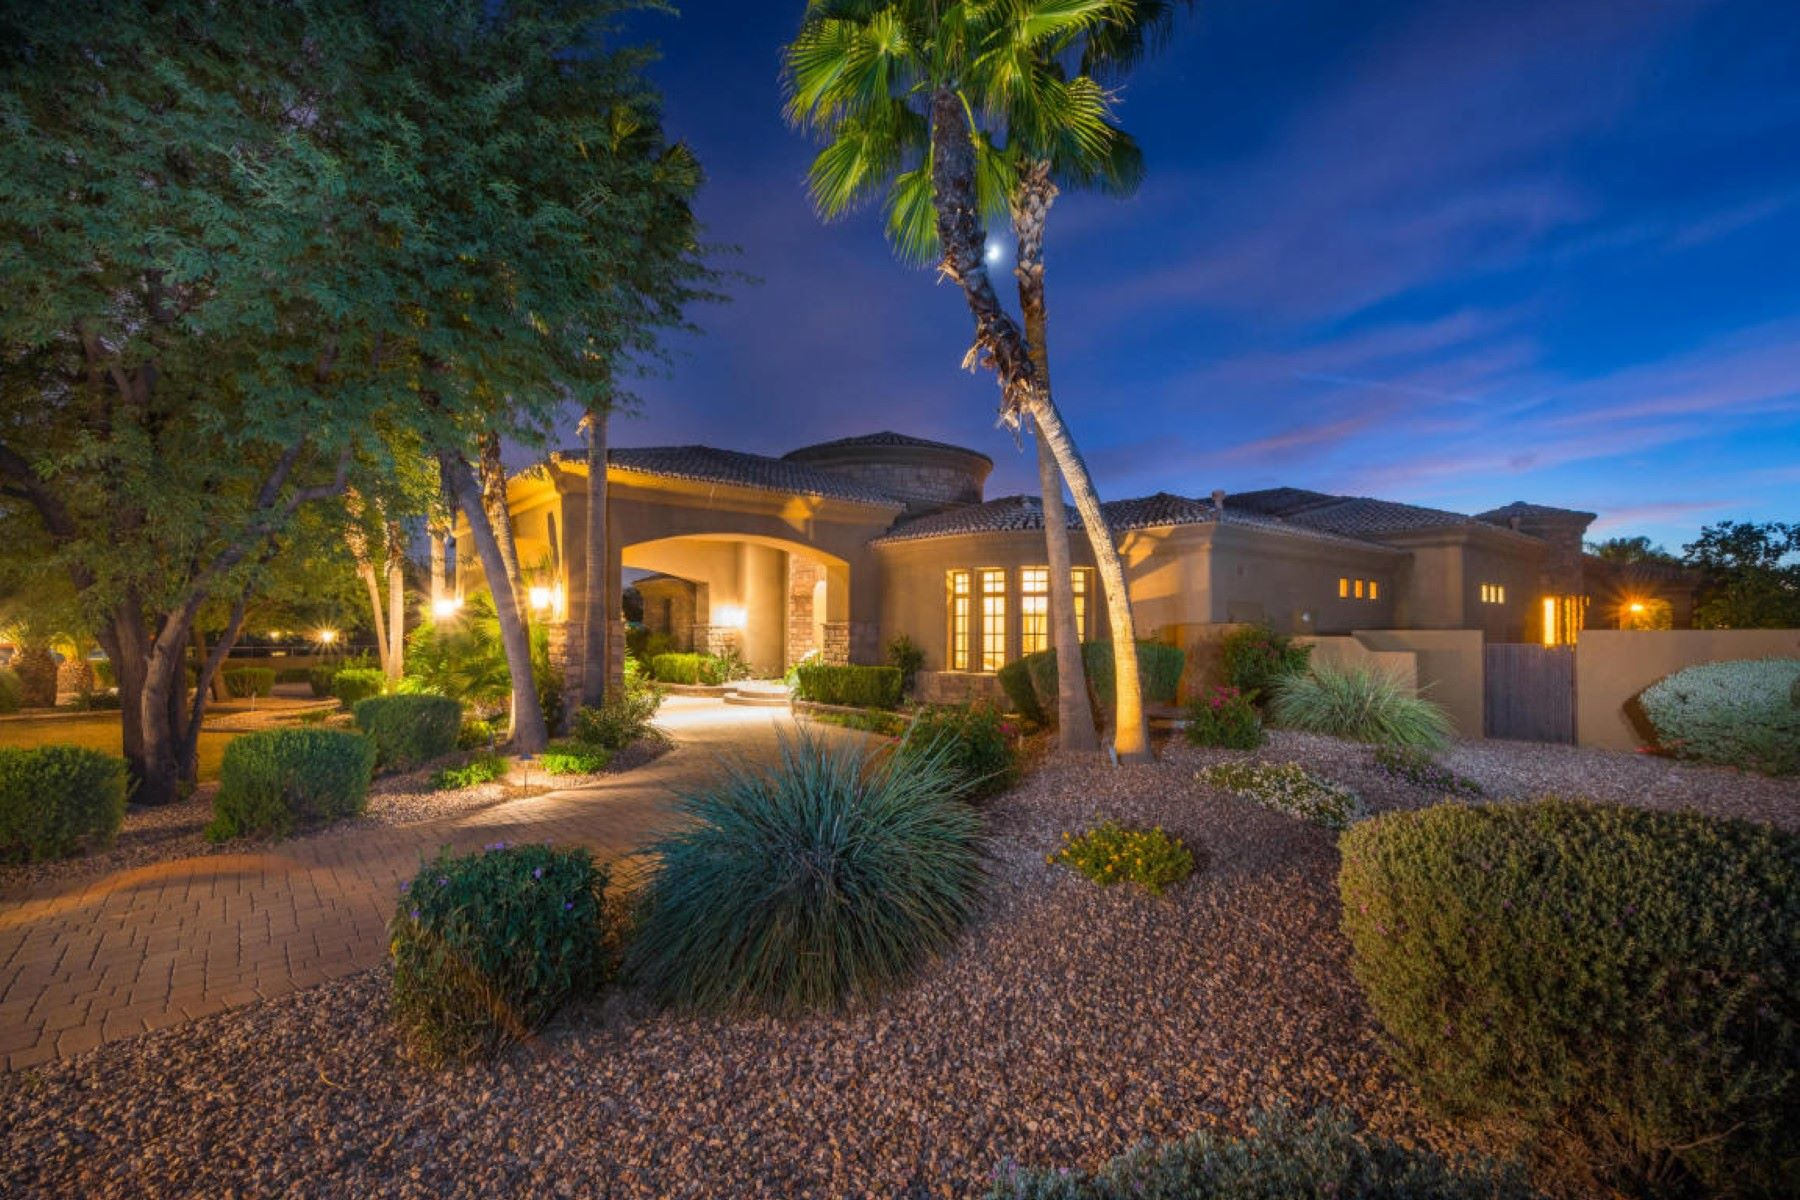 Single Family Home for Sale at Magnificent Mediterranean home behind private gates 12122 N 98th St Scottsdale, Arizona, 85260 United States